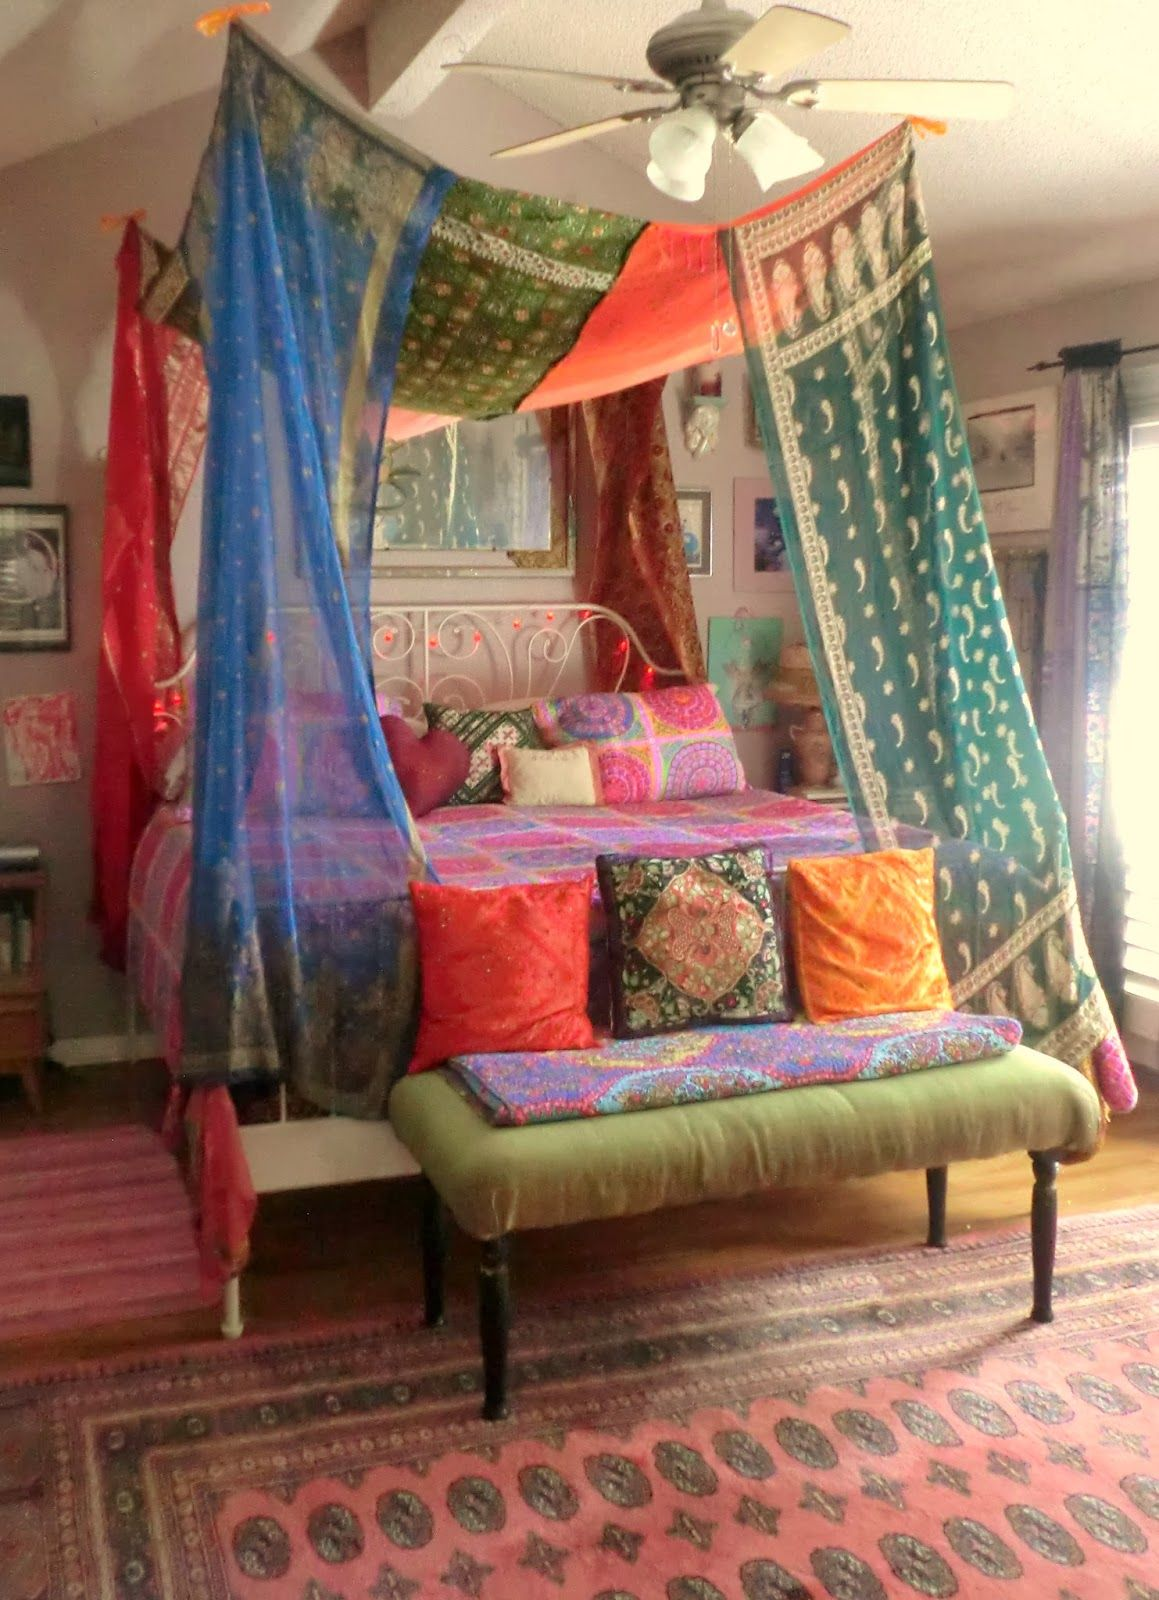 Gypsy Decor Bedroom Hippie Bohemian Bedroom Tumblr Design Inspiration 23452 Decorating